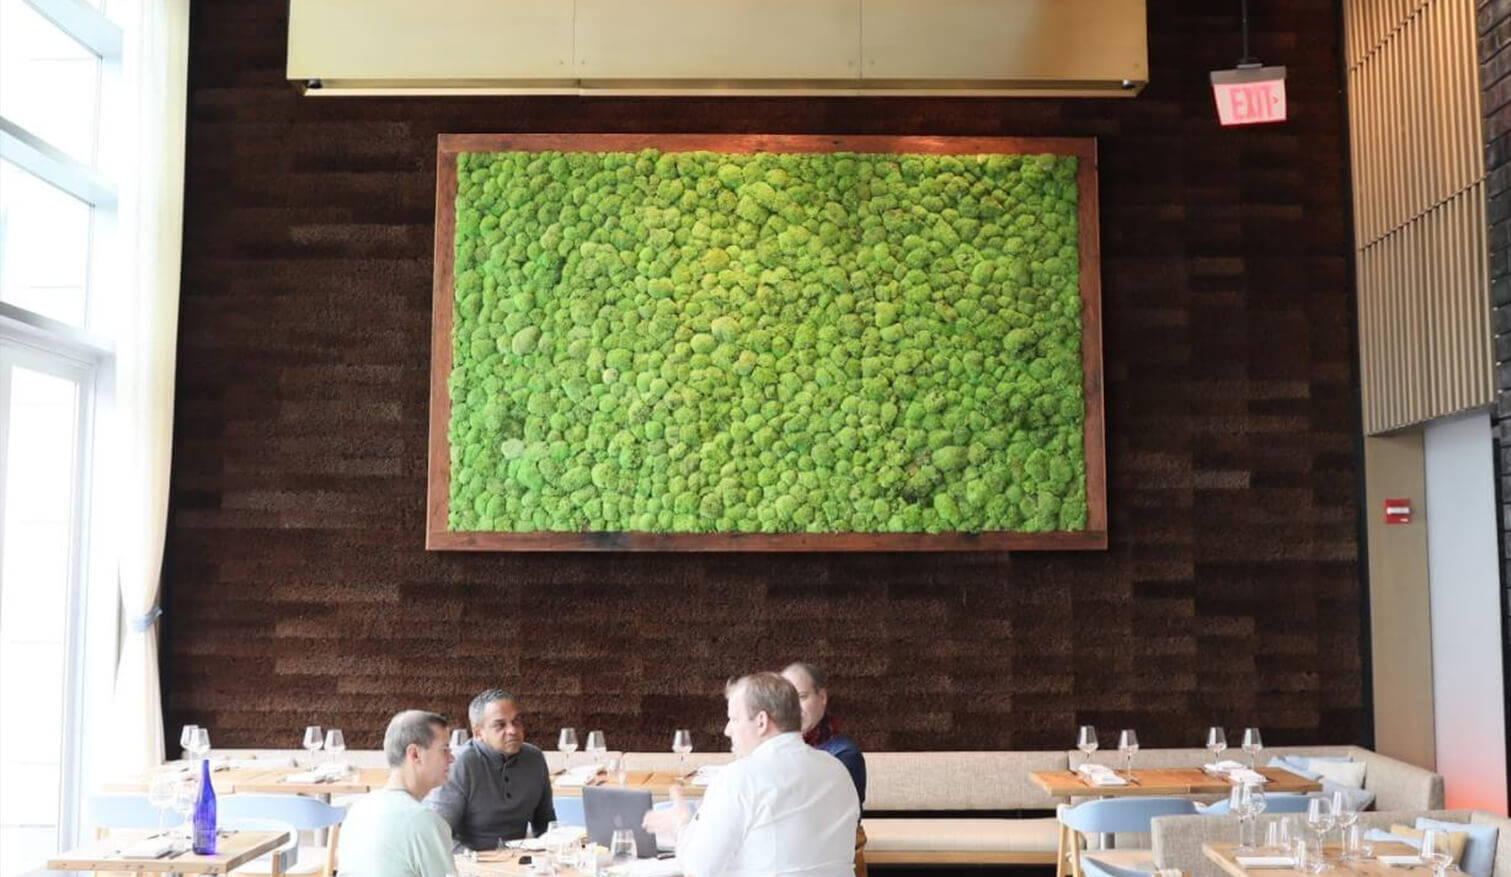 Flowerbox Wall Gardens: Moss Wall Art, Preserved Plants For Indoors